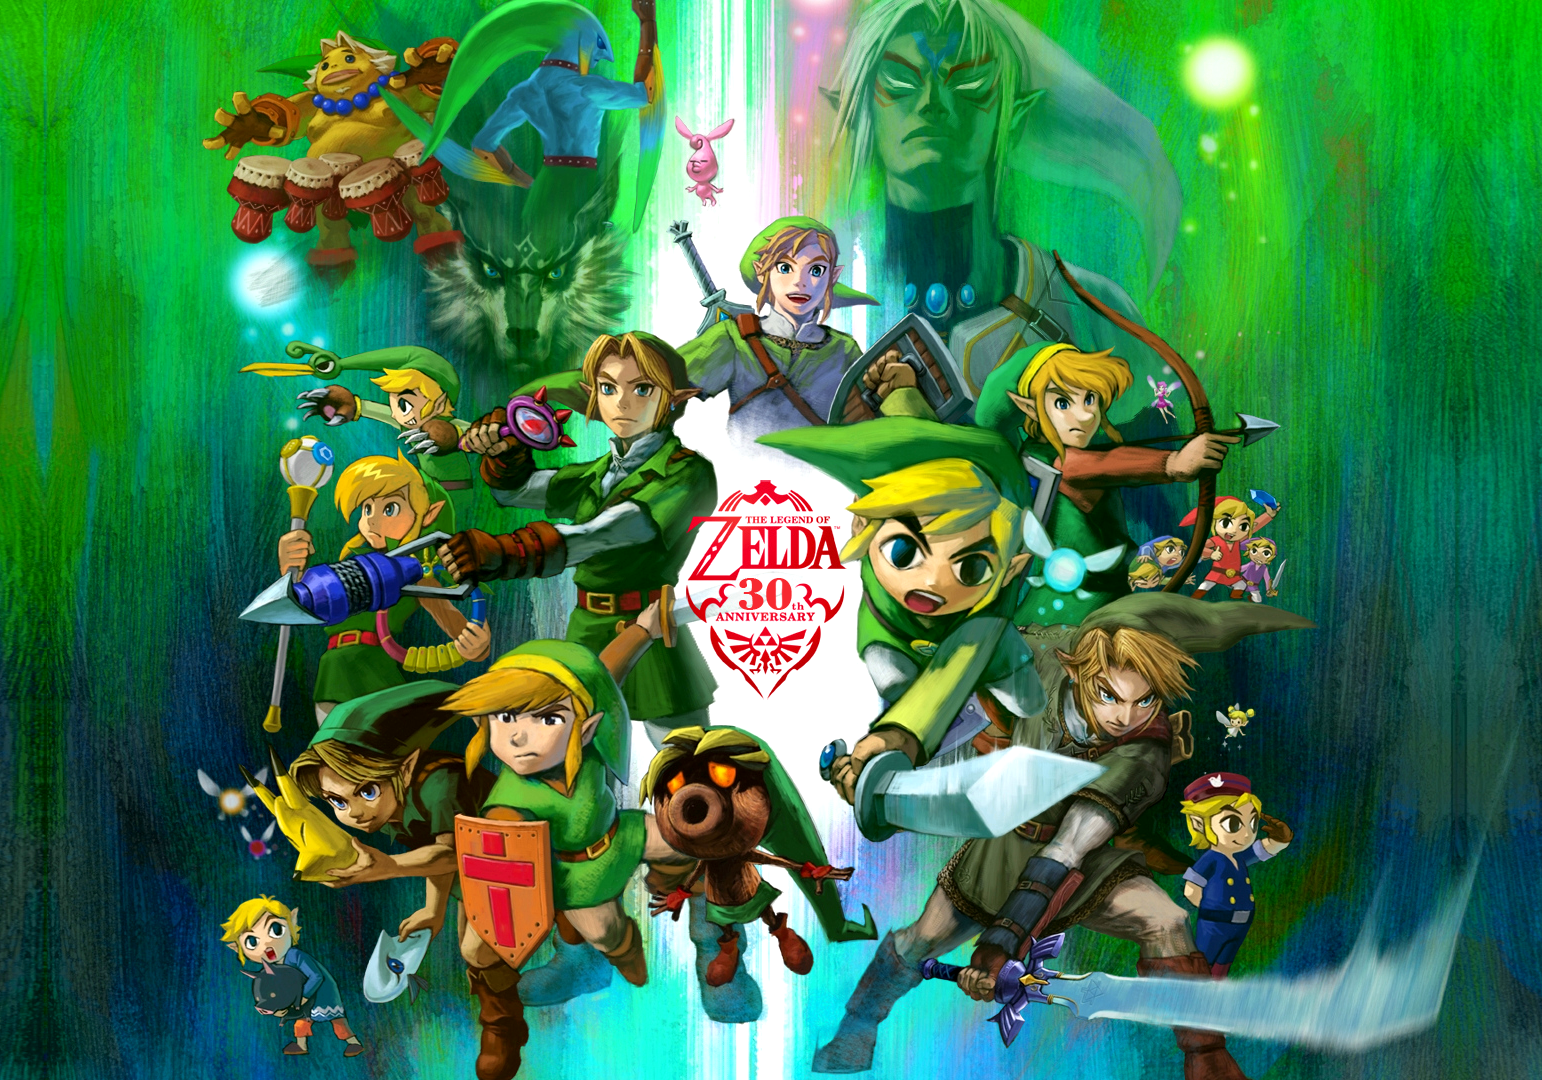 The Legend of Zelda: 30th anniversary - Изображение 1